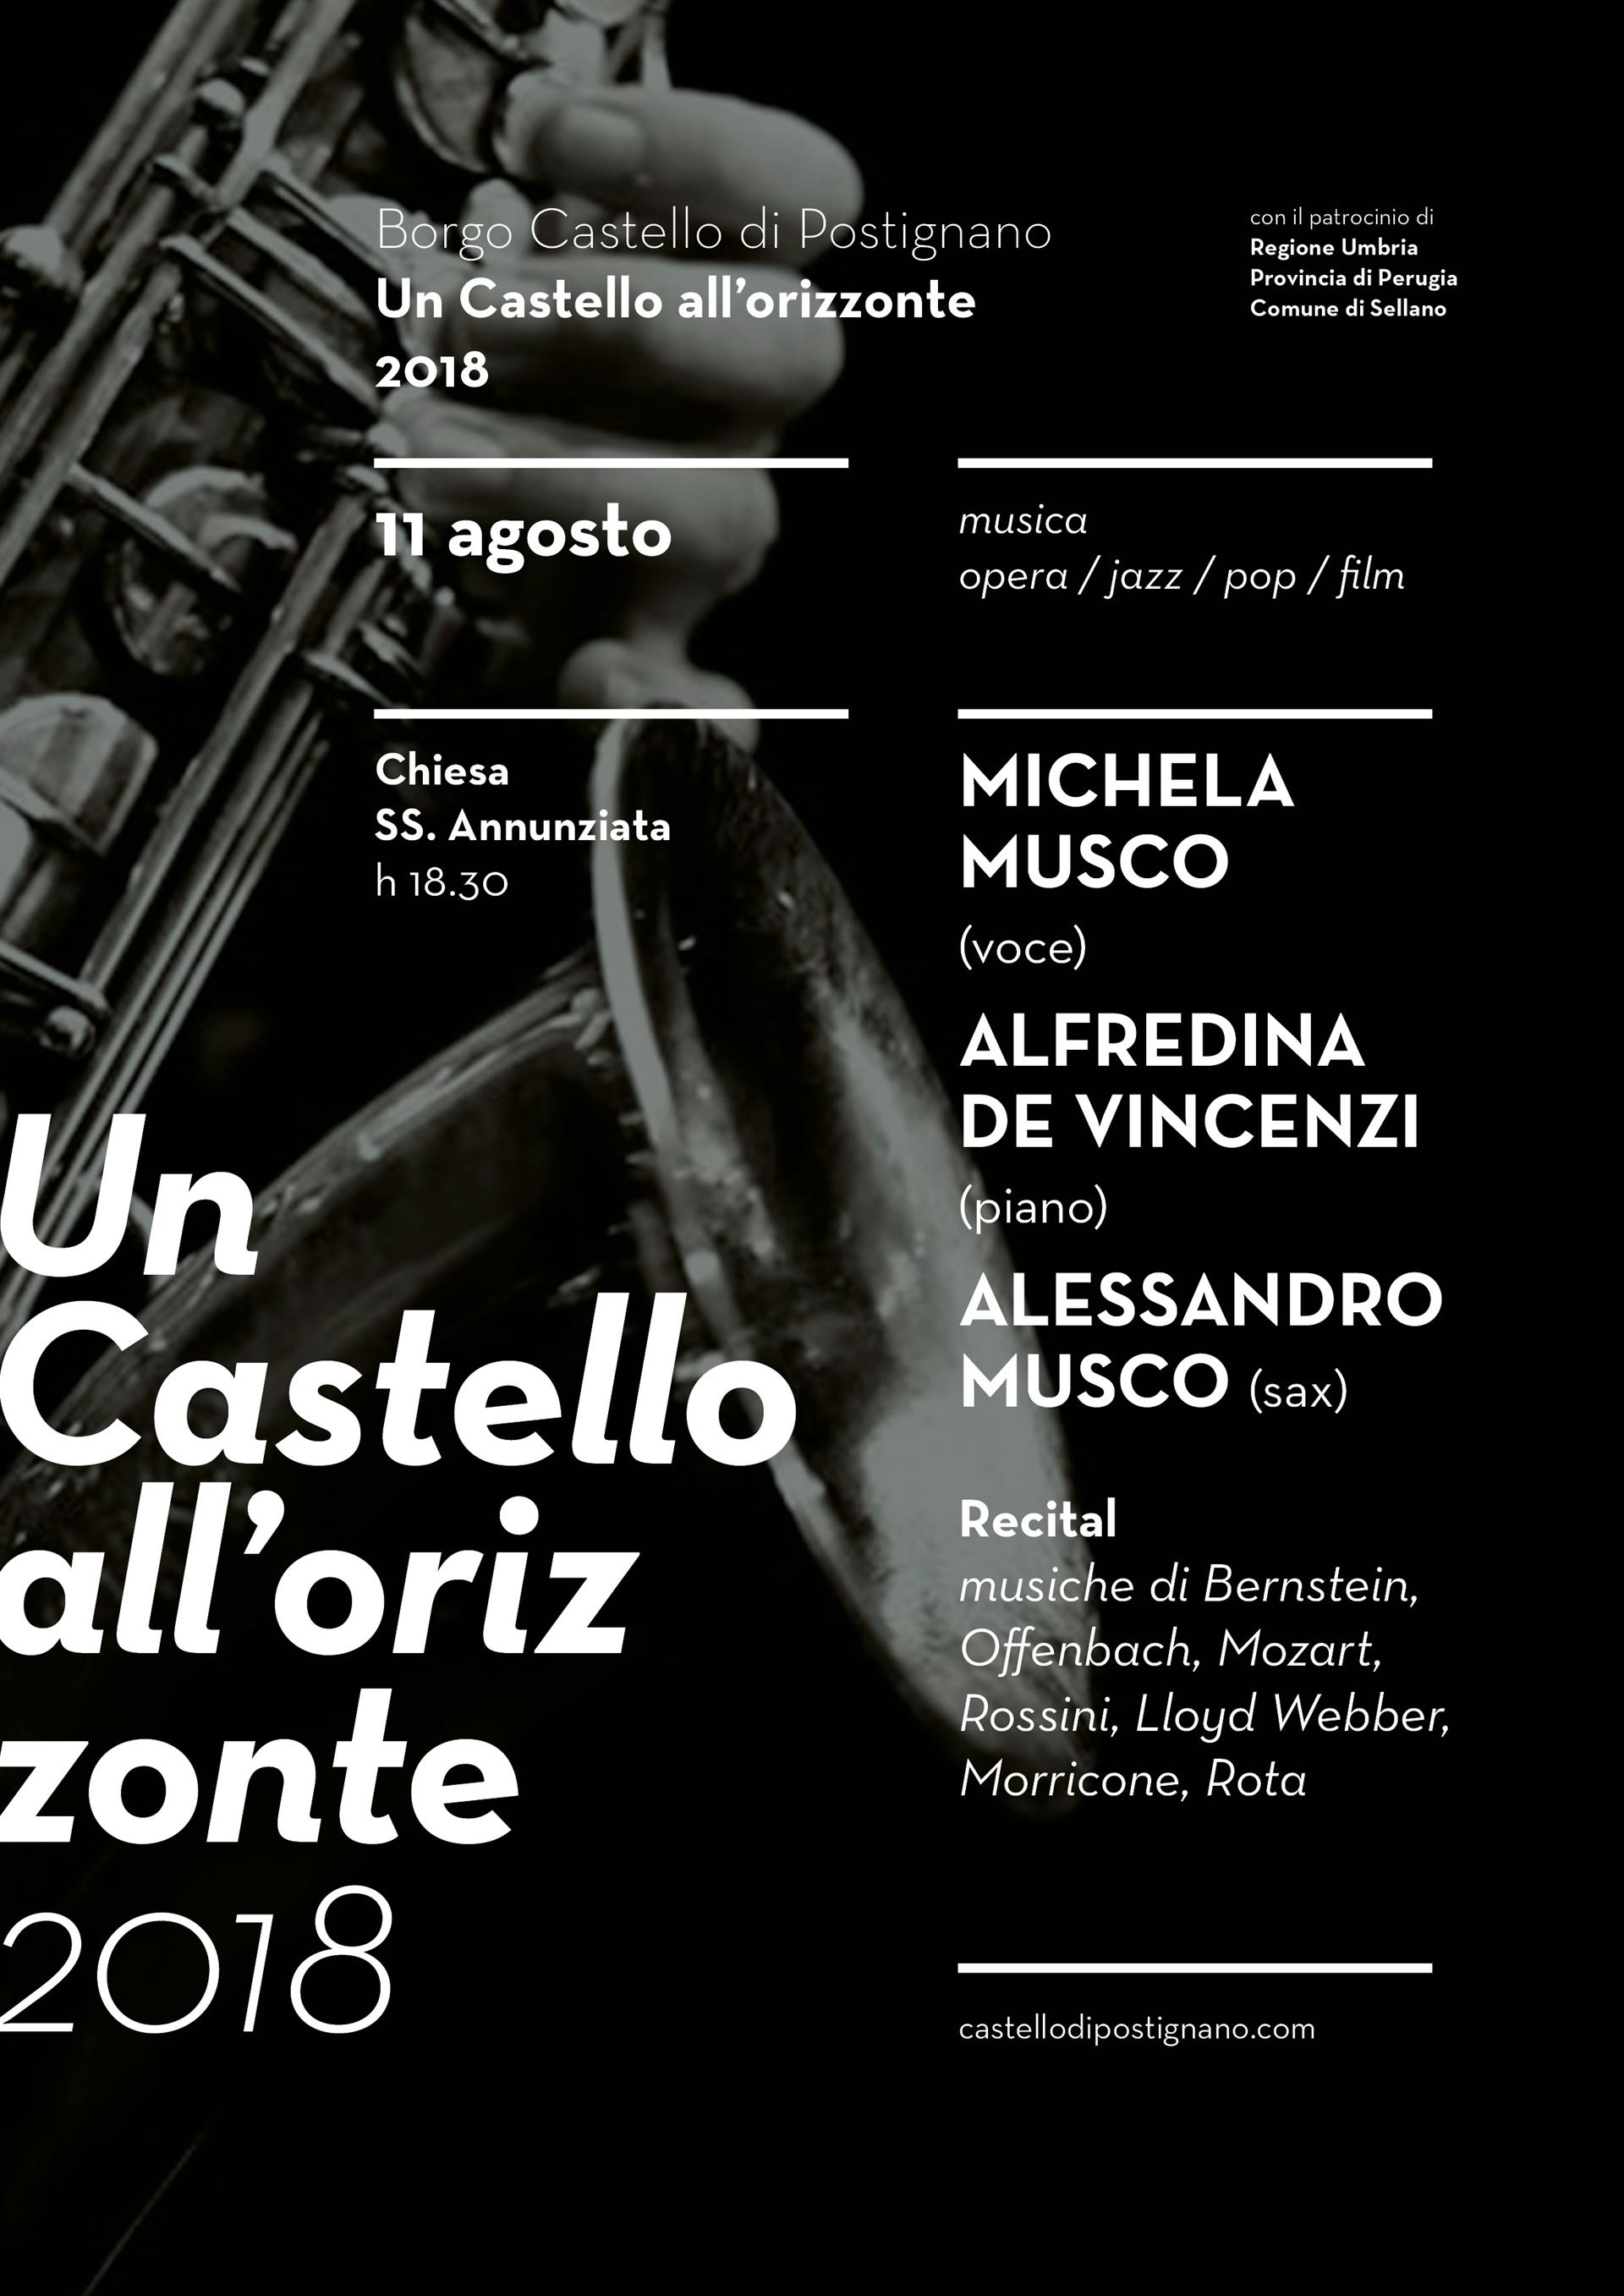 castello2018 0811 musco